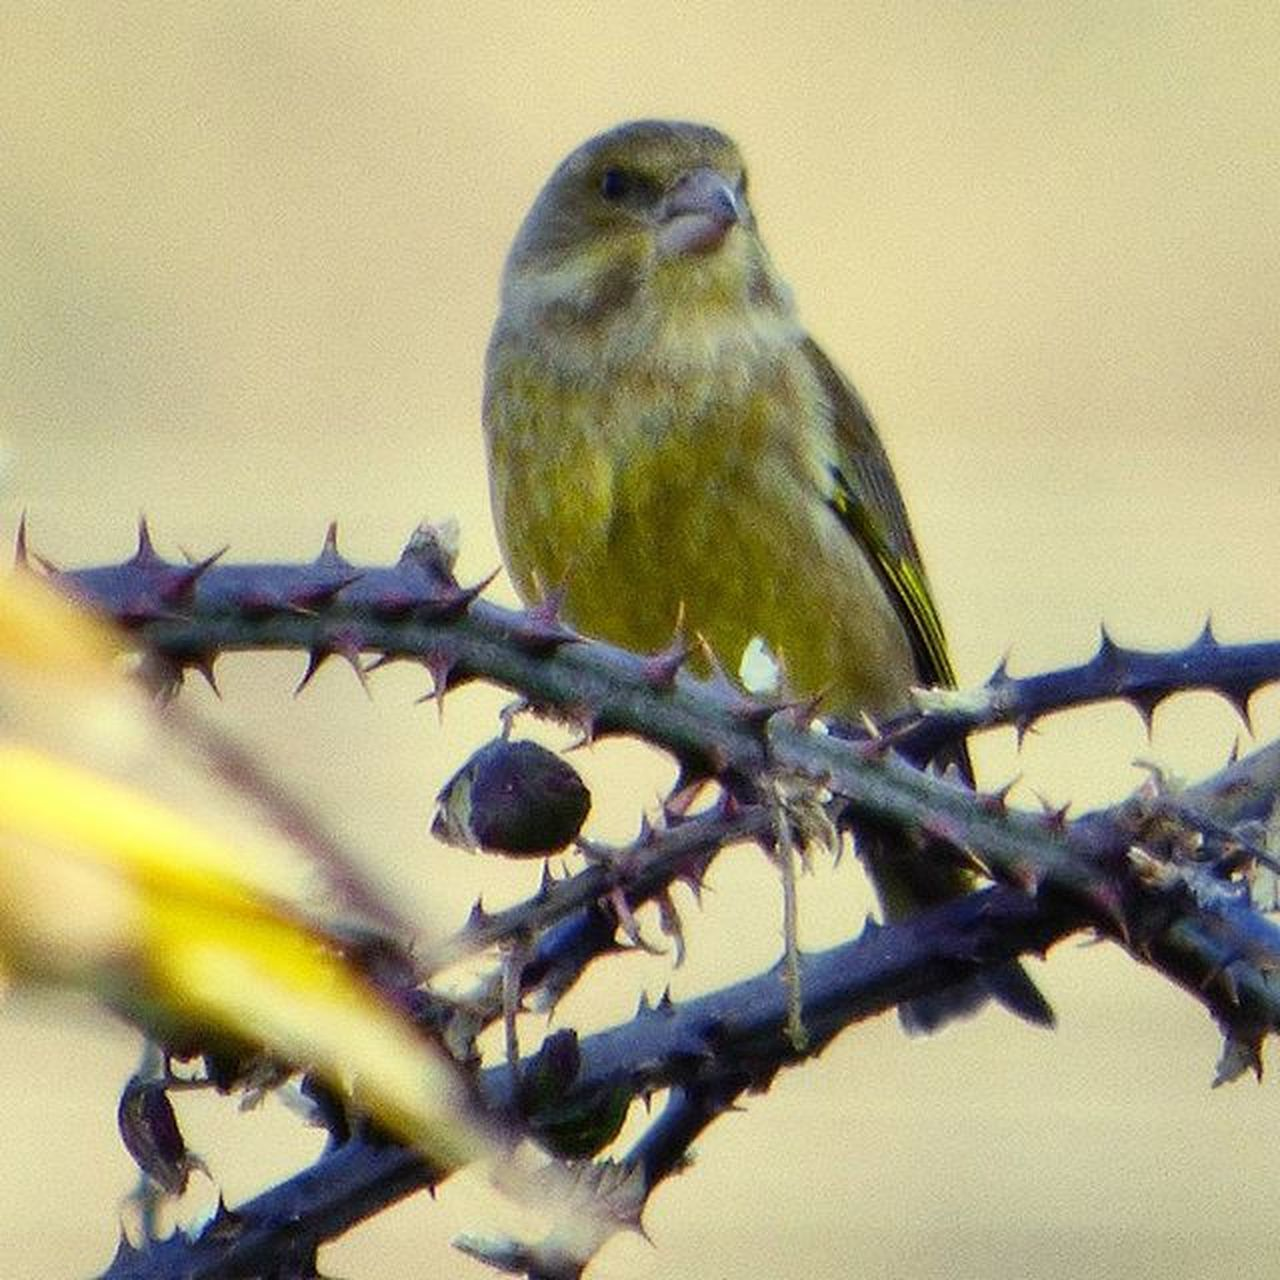 First Greenfinch I've seen, poised and waiting for his turn at the feeder. Nature Photography Uknaturecollective Nature Wild Followme Ig_birdlovers Ig_birdwatchers Nuts_about_birds Wildlife Nature England Rsa_nature Ukwildlifeimages Springwatch Naturehippys